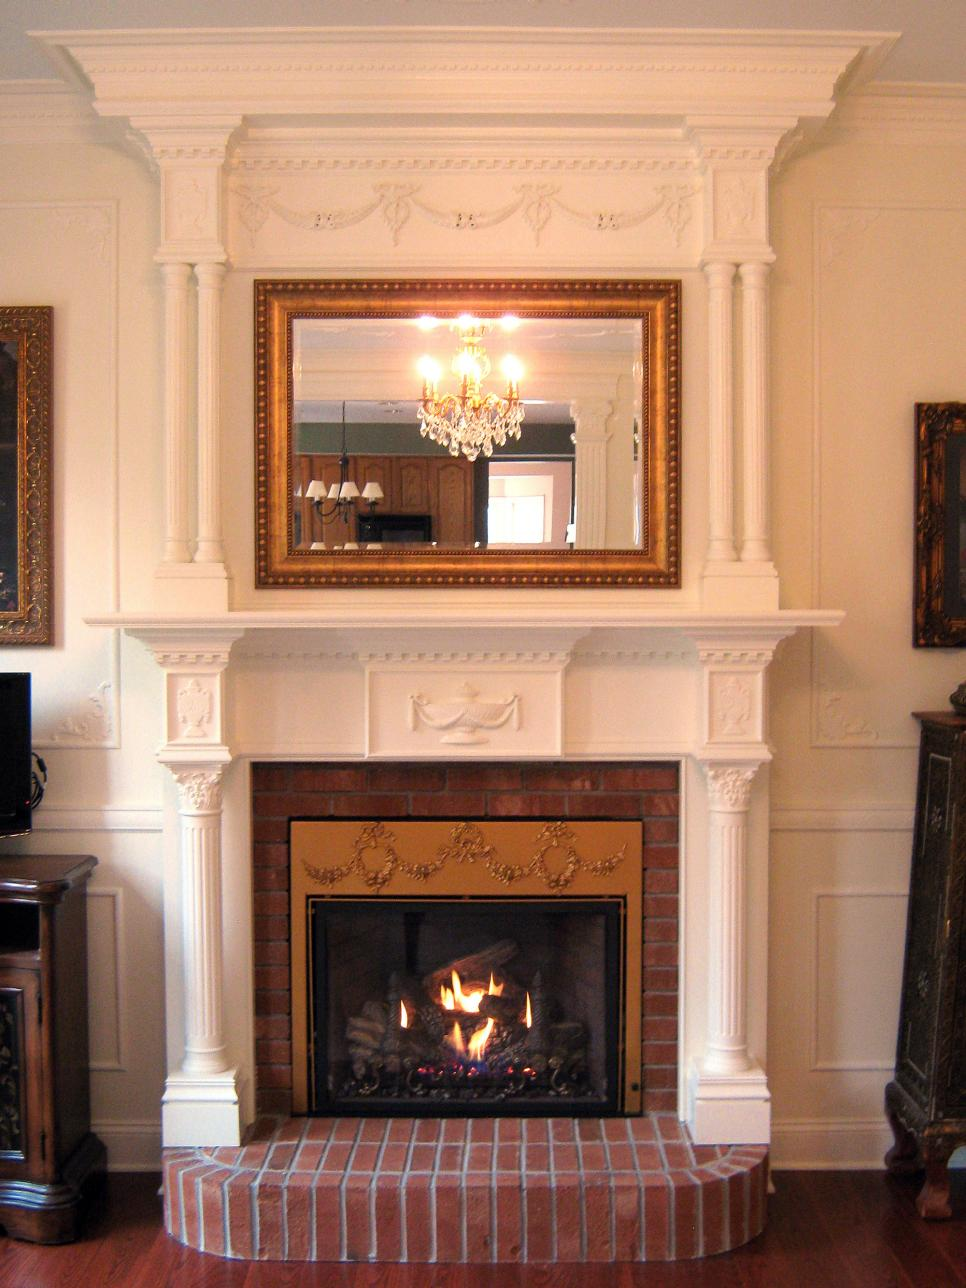 Before and after fireplace makeovers hgtv for 9 x 13 living room ideas